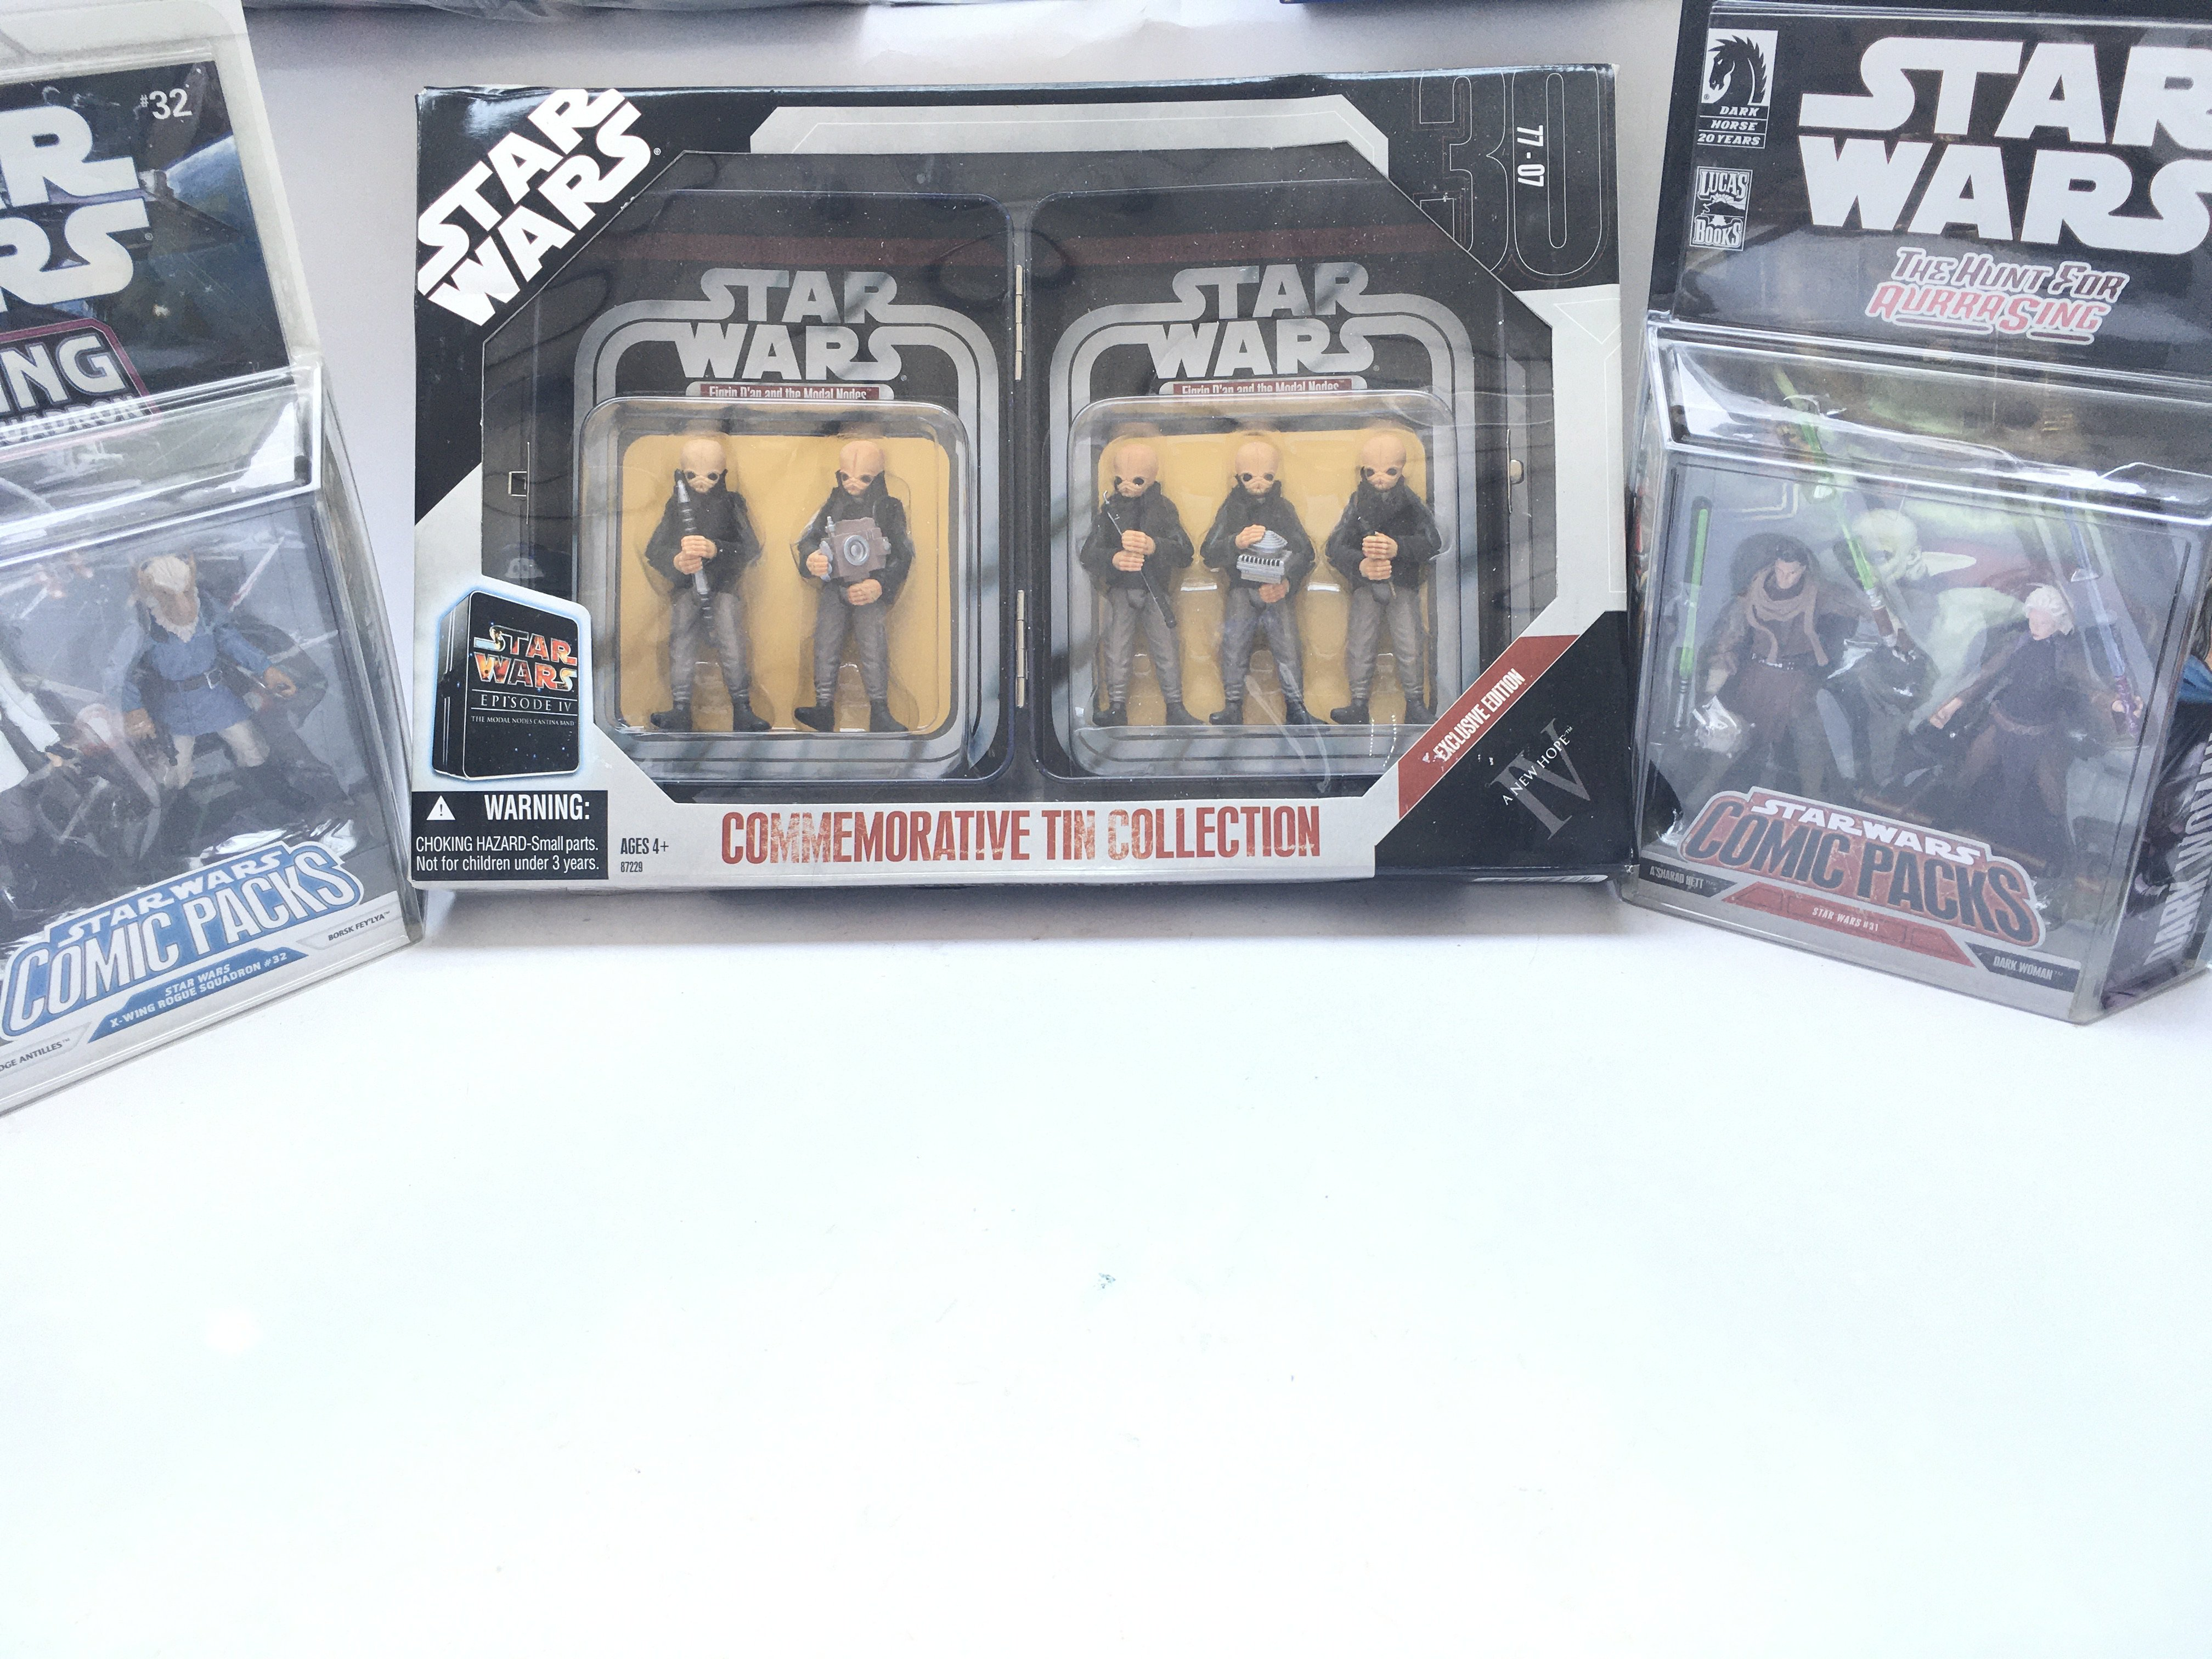 A Star Wars Commemorative Tin Collection Episode I